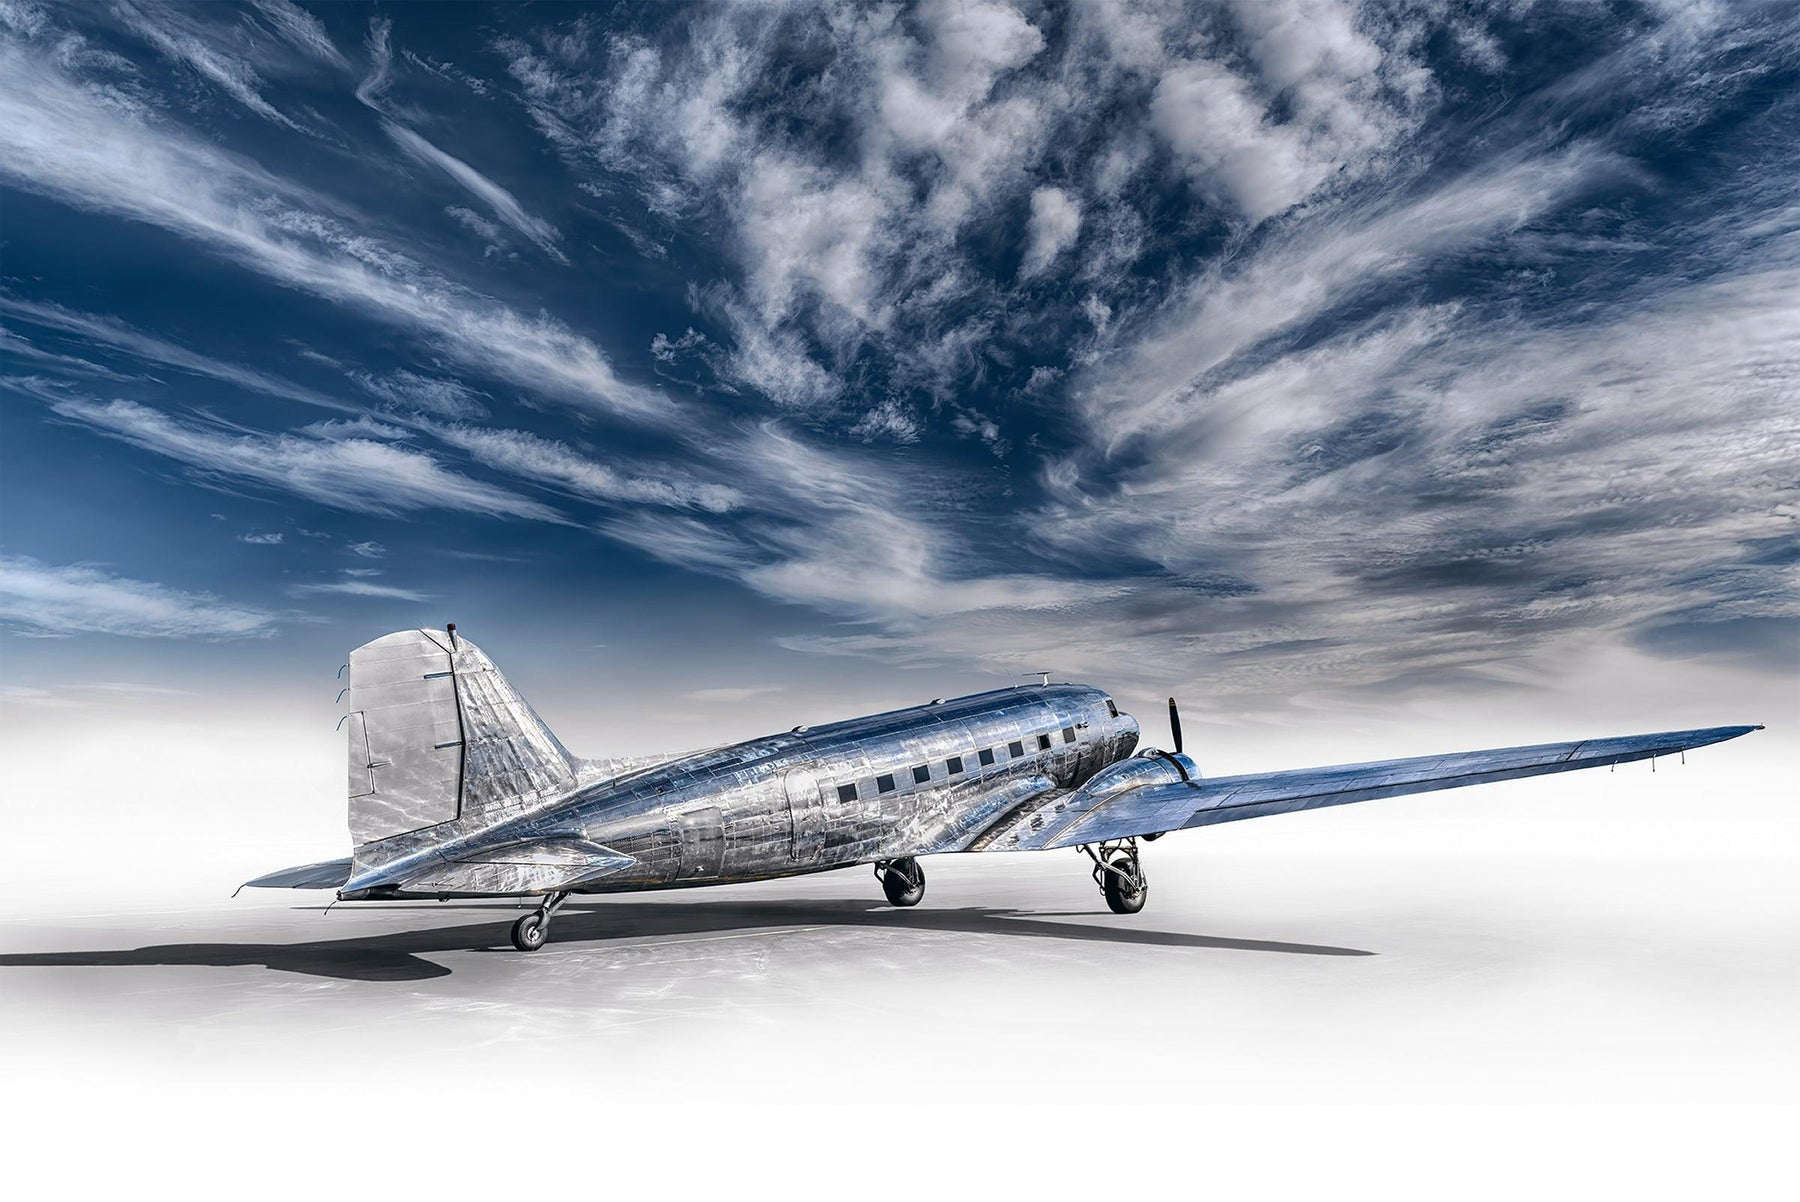 Silver DC-3 airplane with a white foreground and a cloudy blue sky above